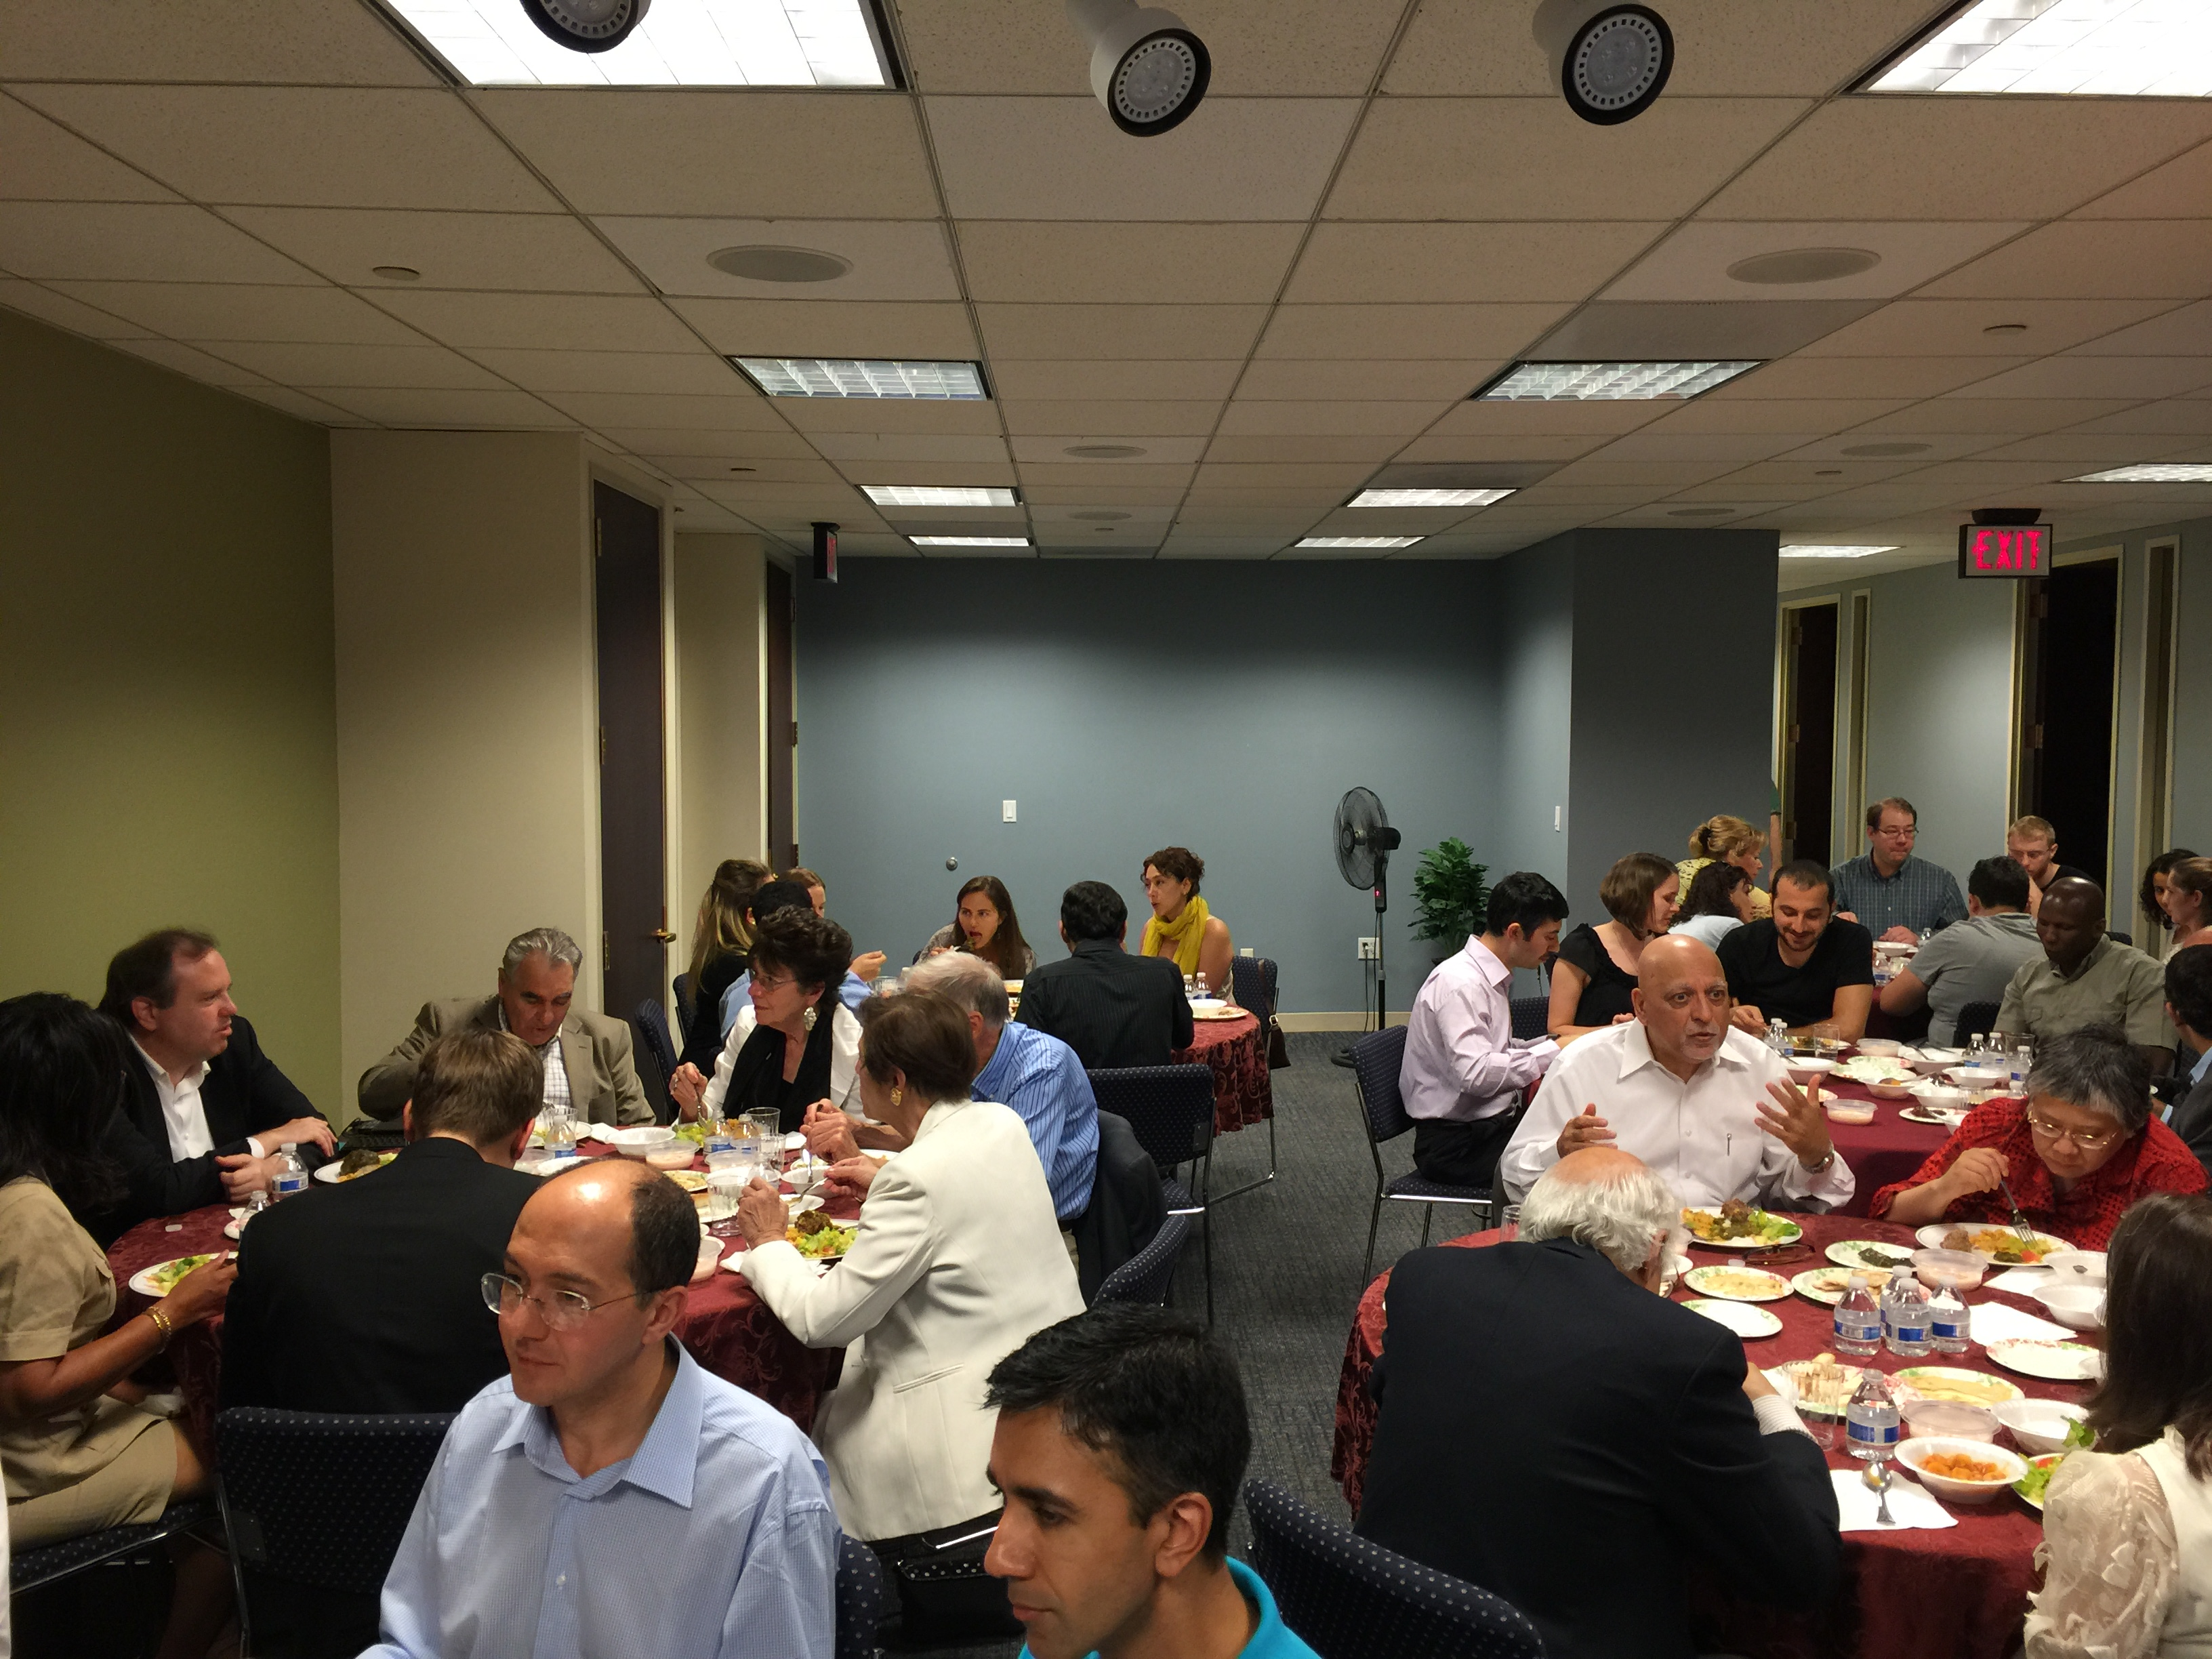 iftar with friends of Anatolia-full house! #dialogue #friendship #Turkey